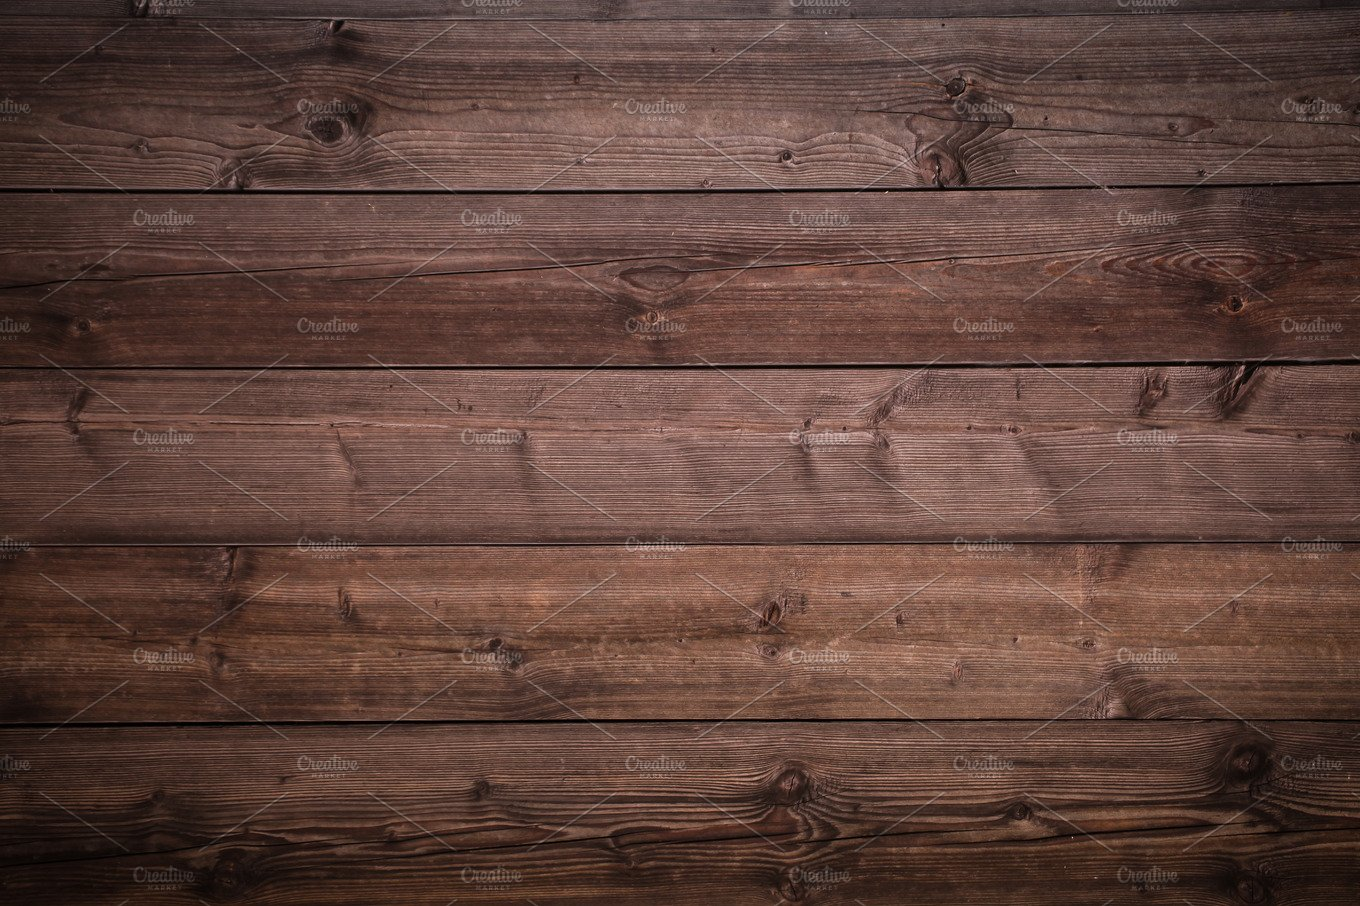 Vintage Wood Background Texture 122 Abstract Photos Creative Market